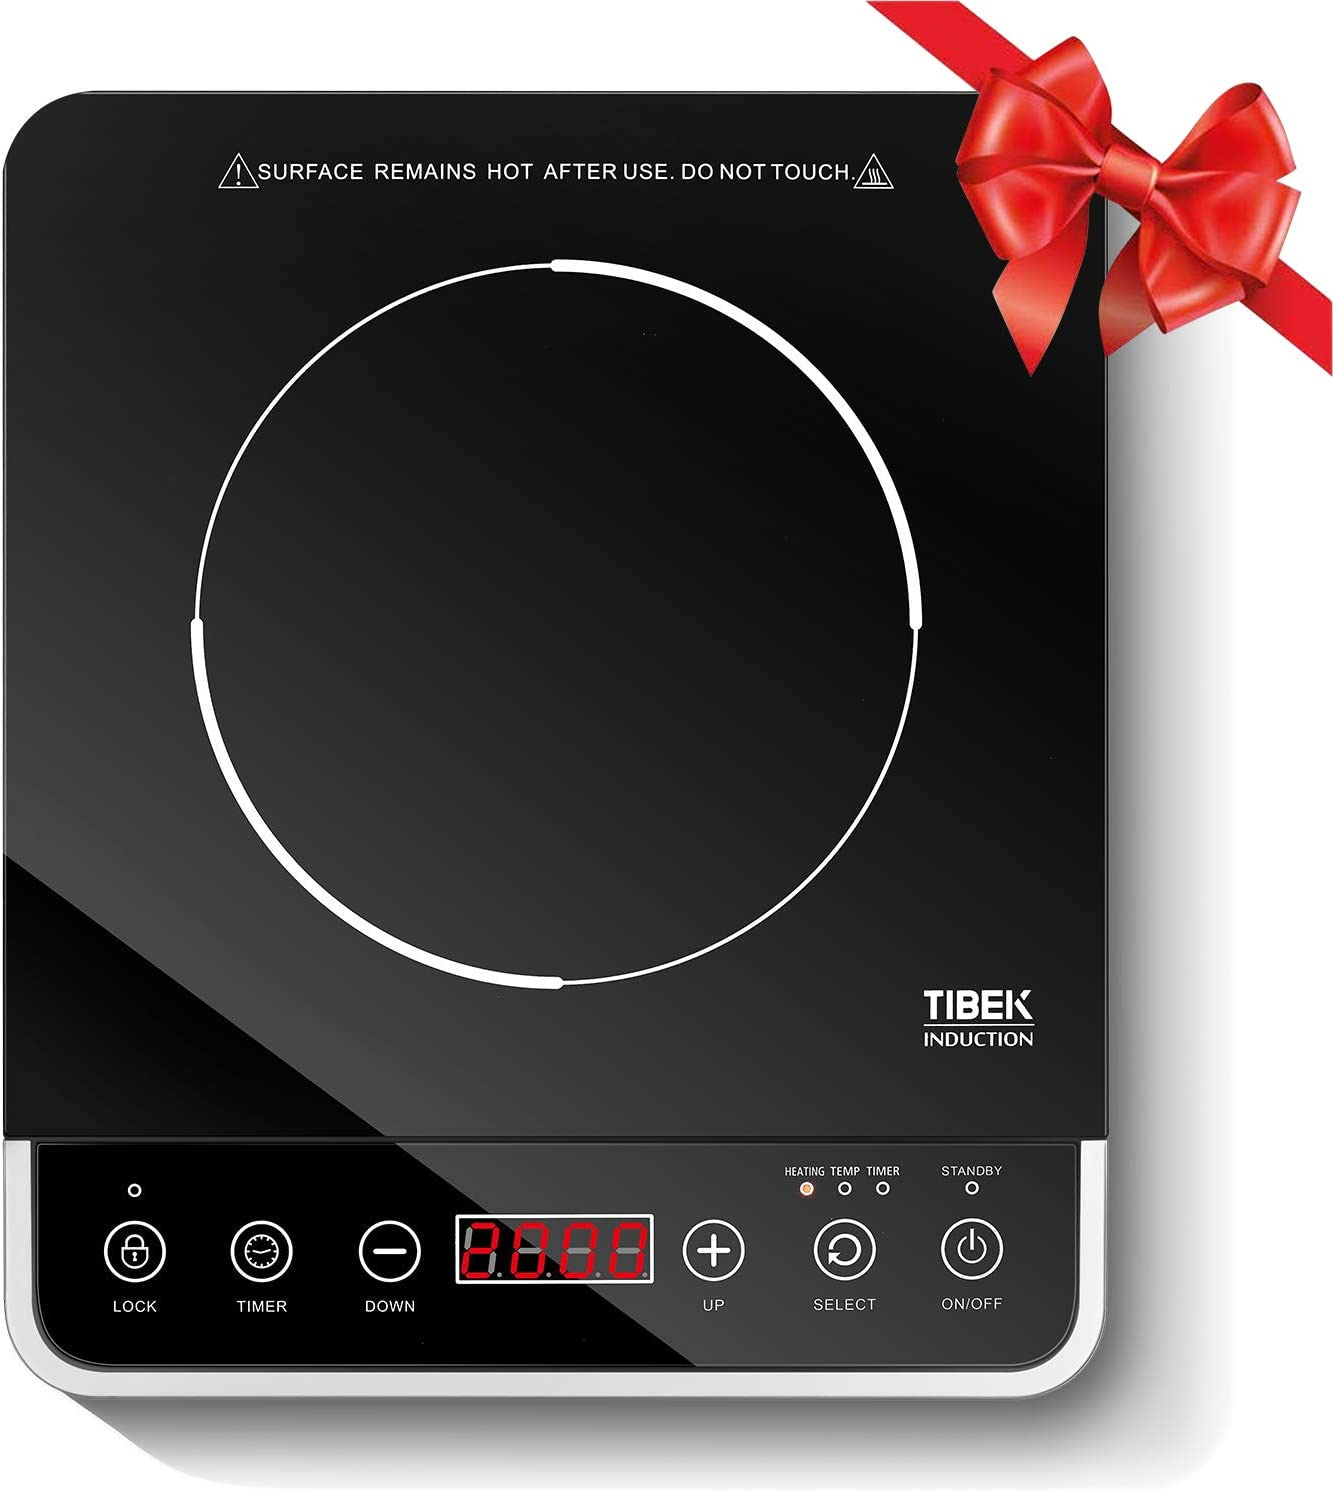 Portable Induction Cooktop, 1800W Countertop Burner Cooker with 10 Power Levels, 180 Minutes Timer, 3 Safety Lock, Wear Resistance (Security,ETL Approved)